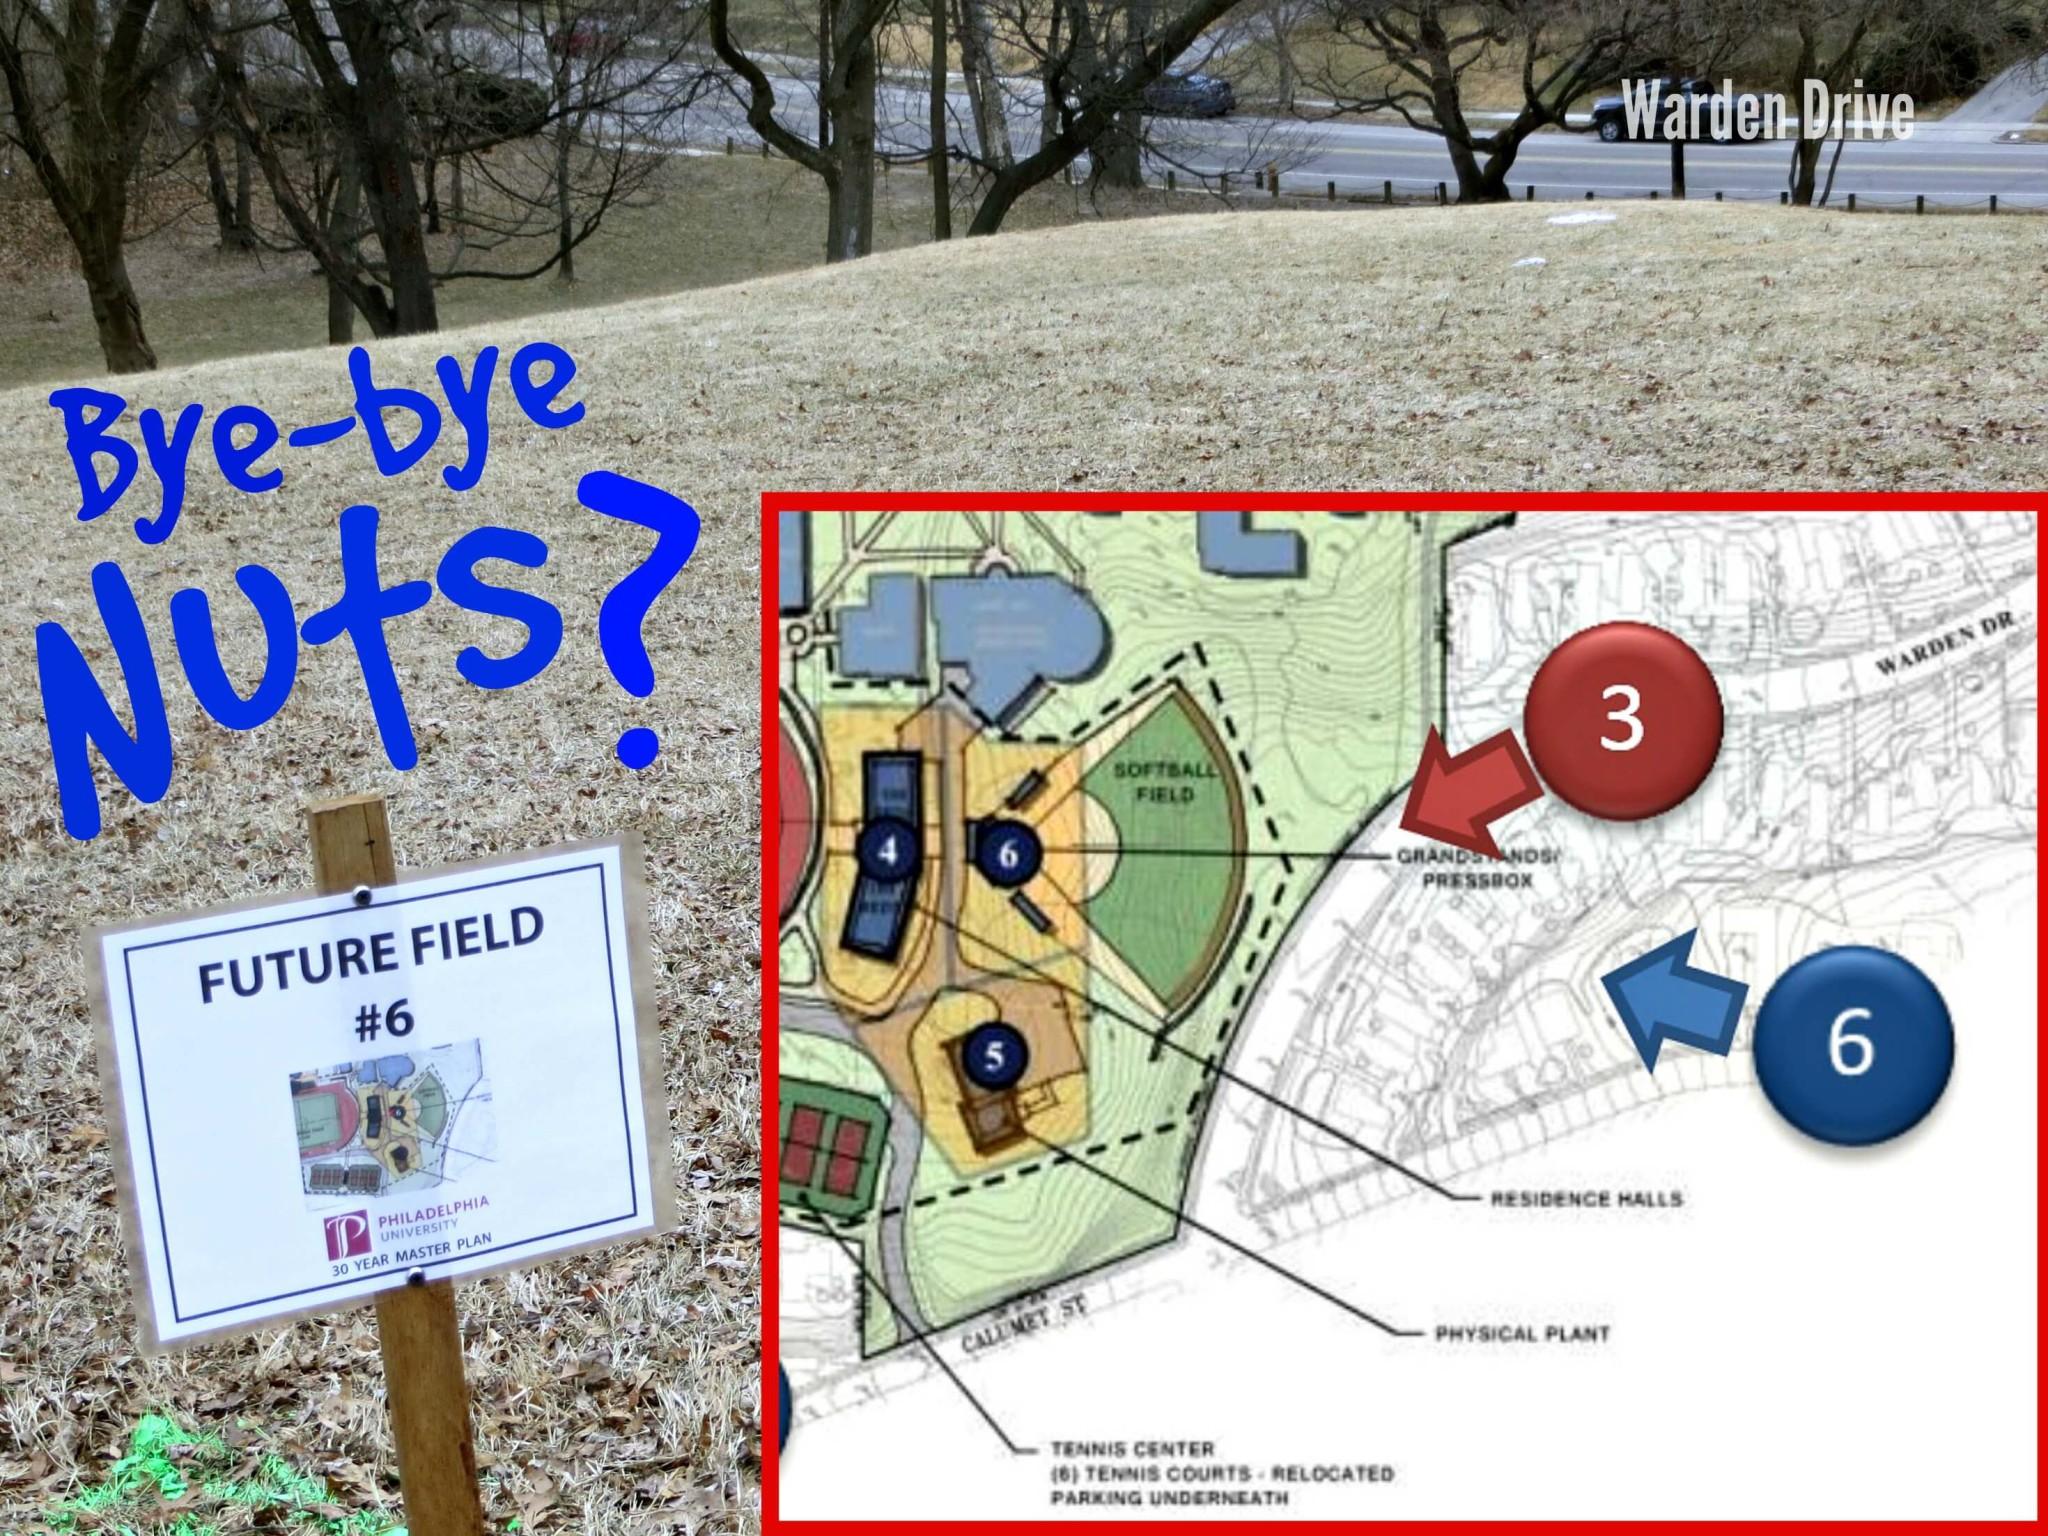 East Falls Local Future site #6 The Nuts with Sign Insert Bye Bye Nuts txt